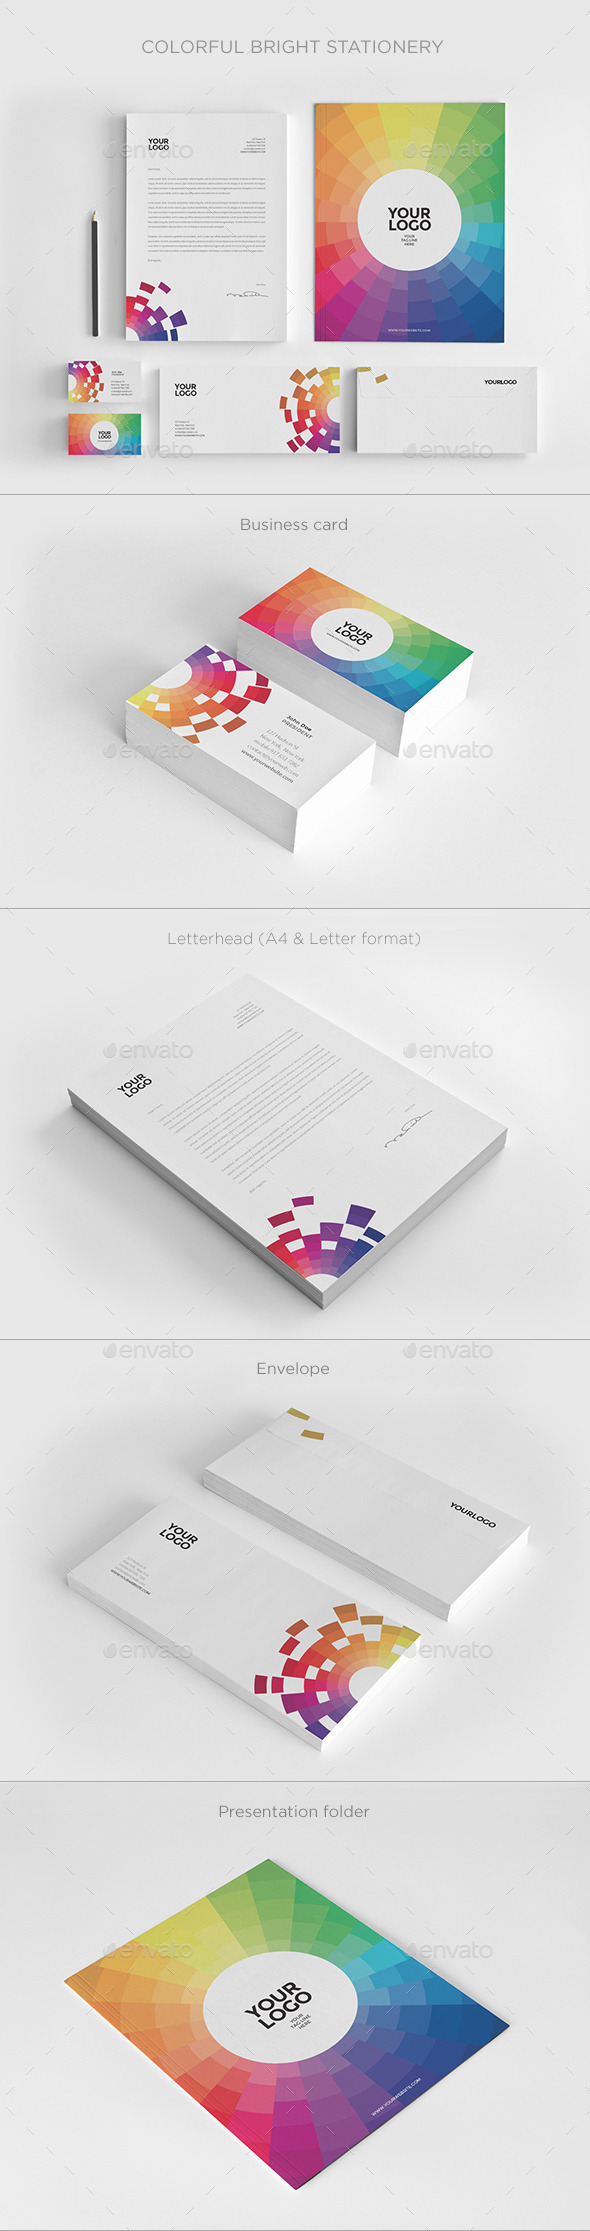 Colorful Bright Stationery - Stationery Print Templates